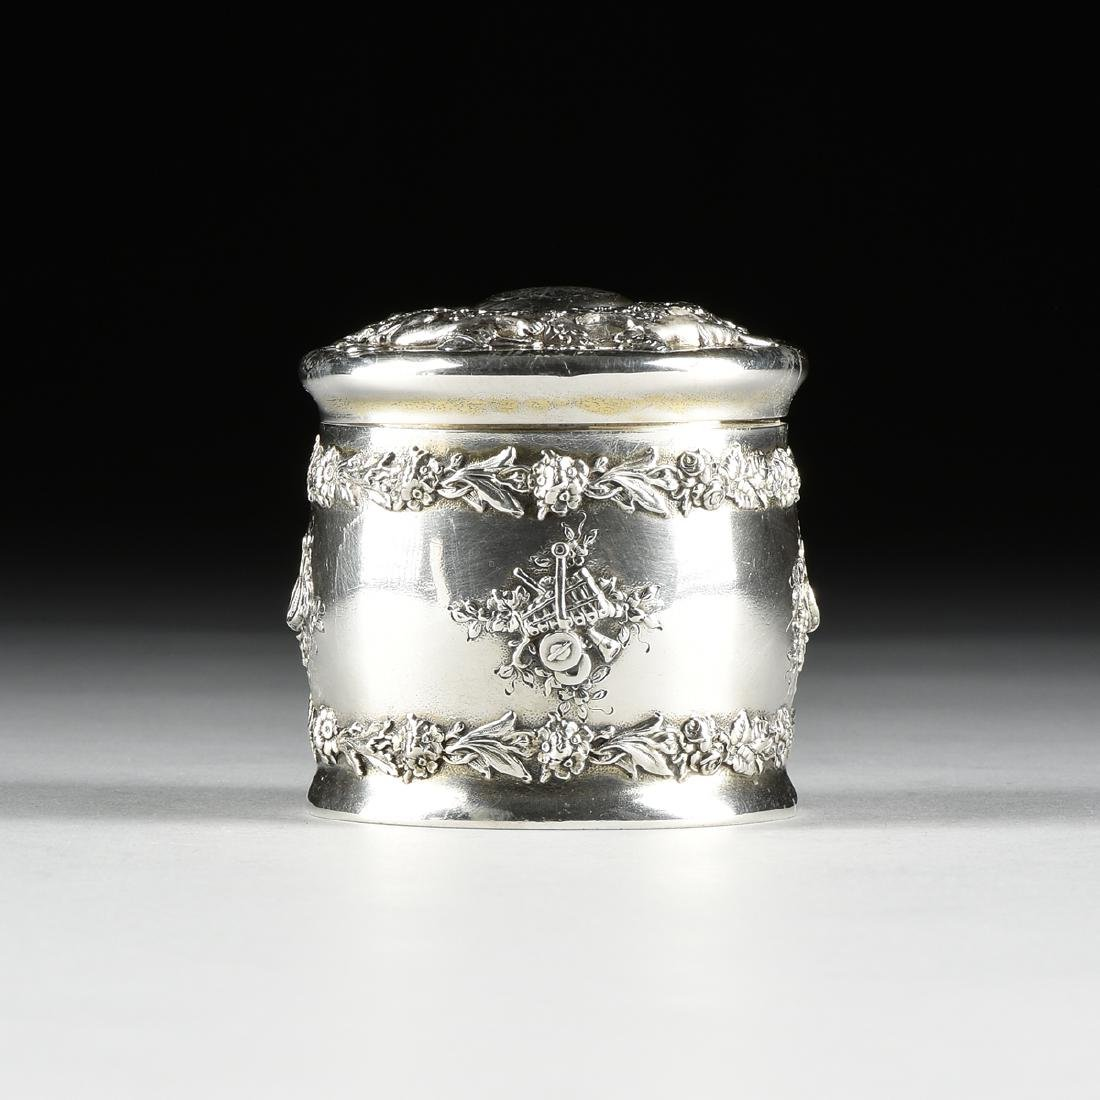 A TIFFANY & CO. STERLING SILVER AND SILVER GILT